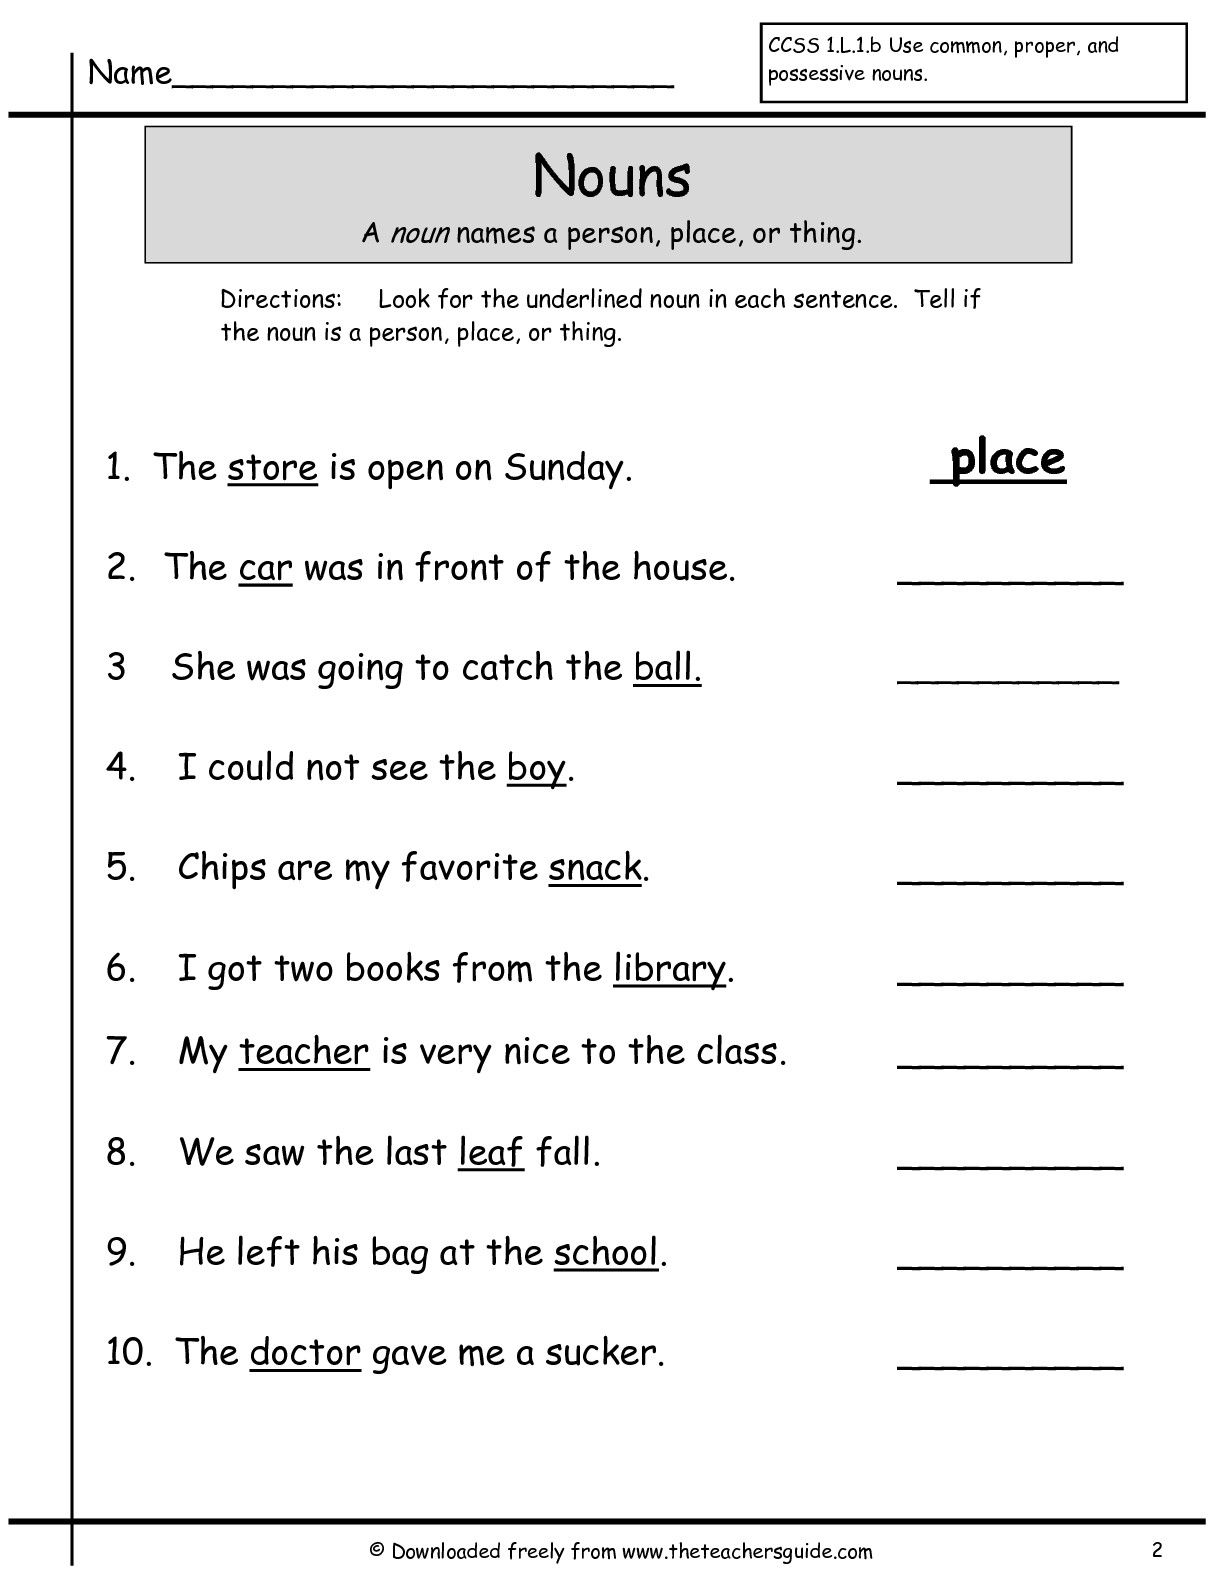 Uncategorized Noun Worksheets For 1st Grade nouns grade 1 worksheets google search kelina pinterest search